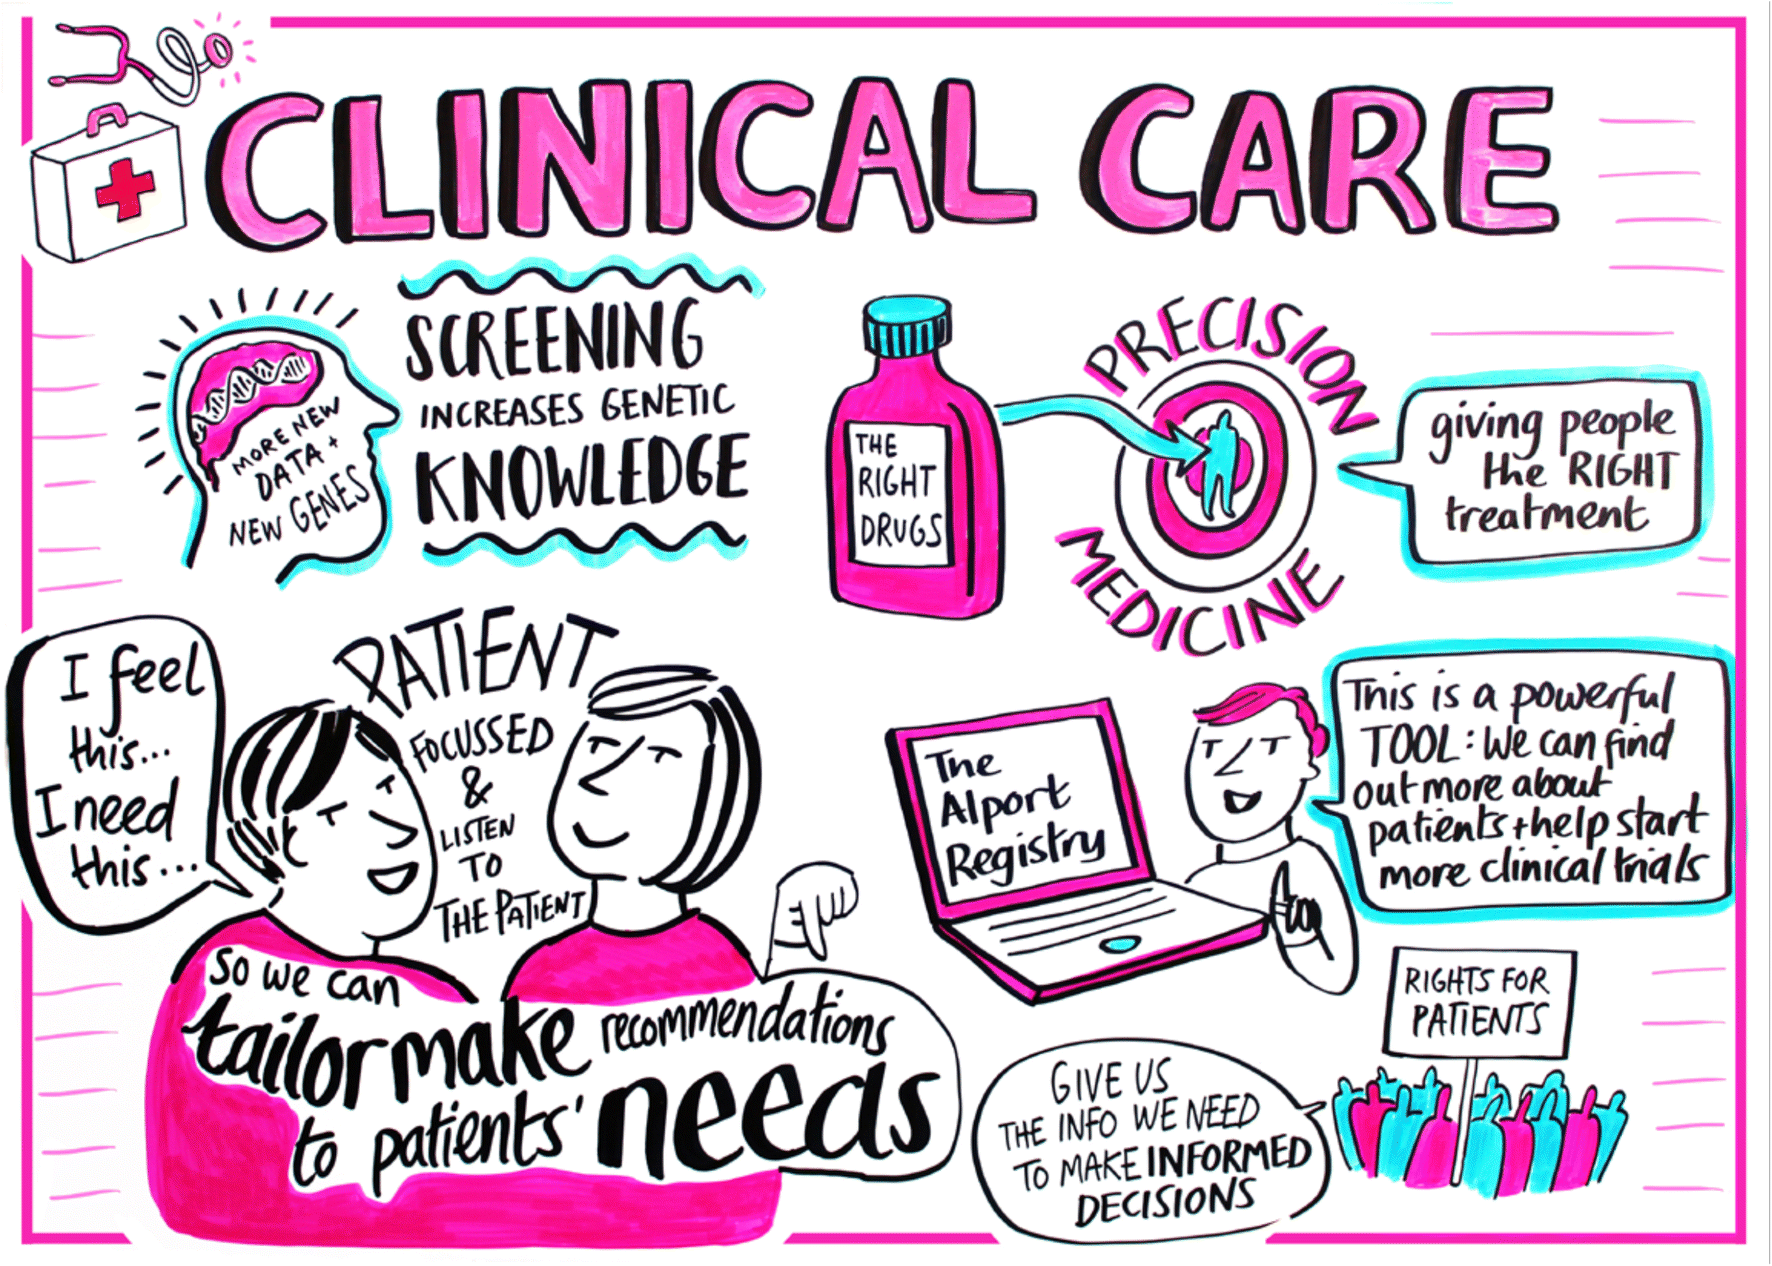 The importance of clinician, patient and researcher